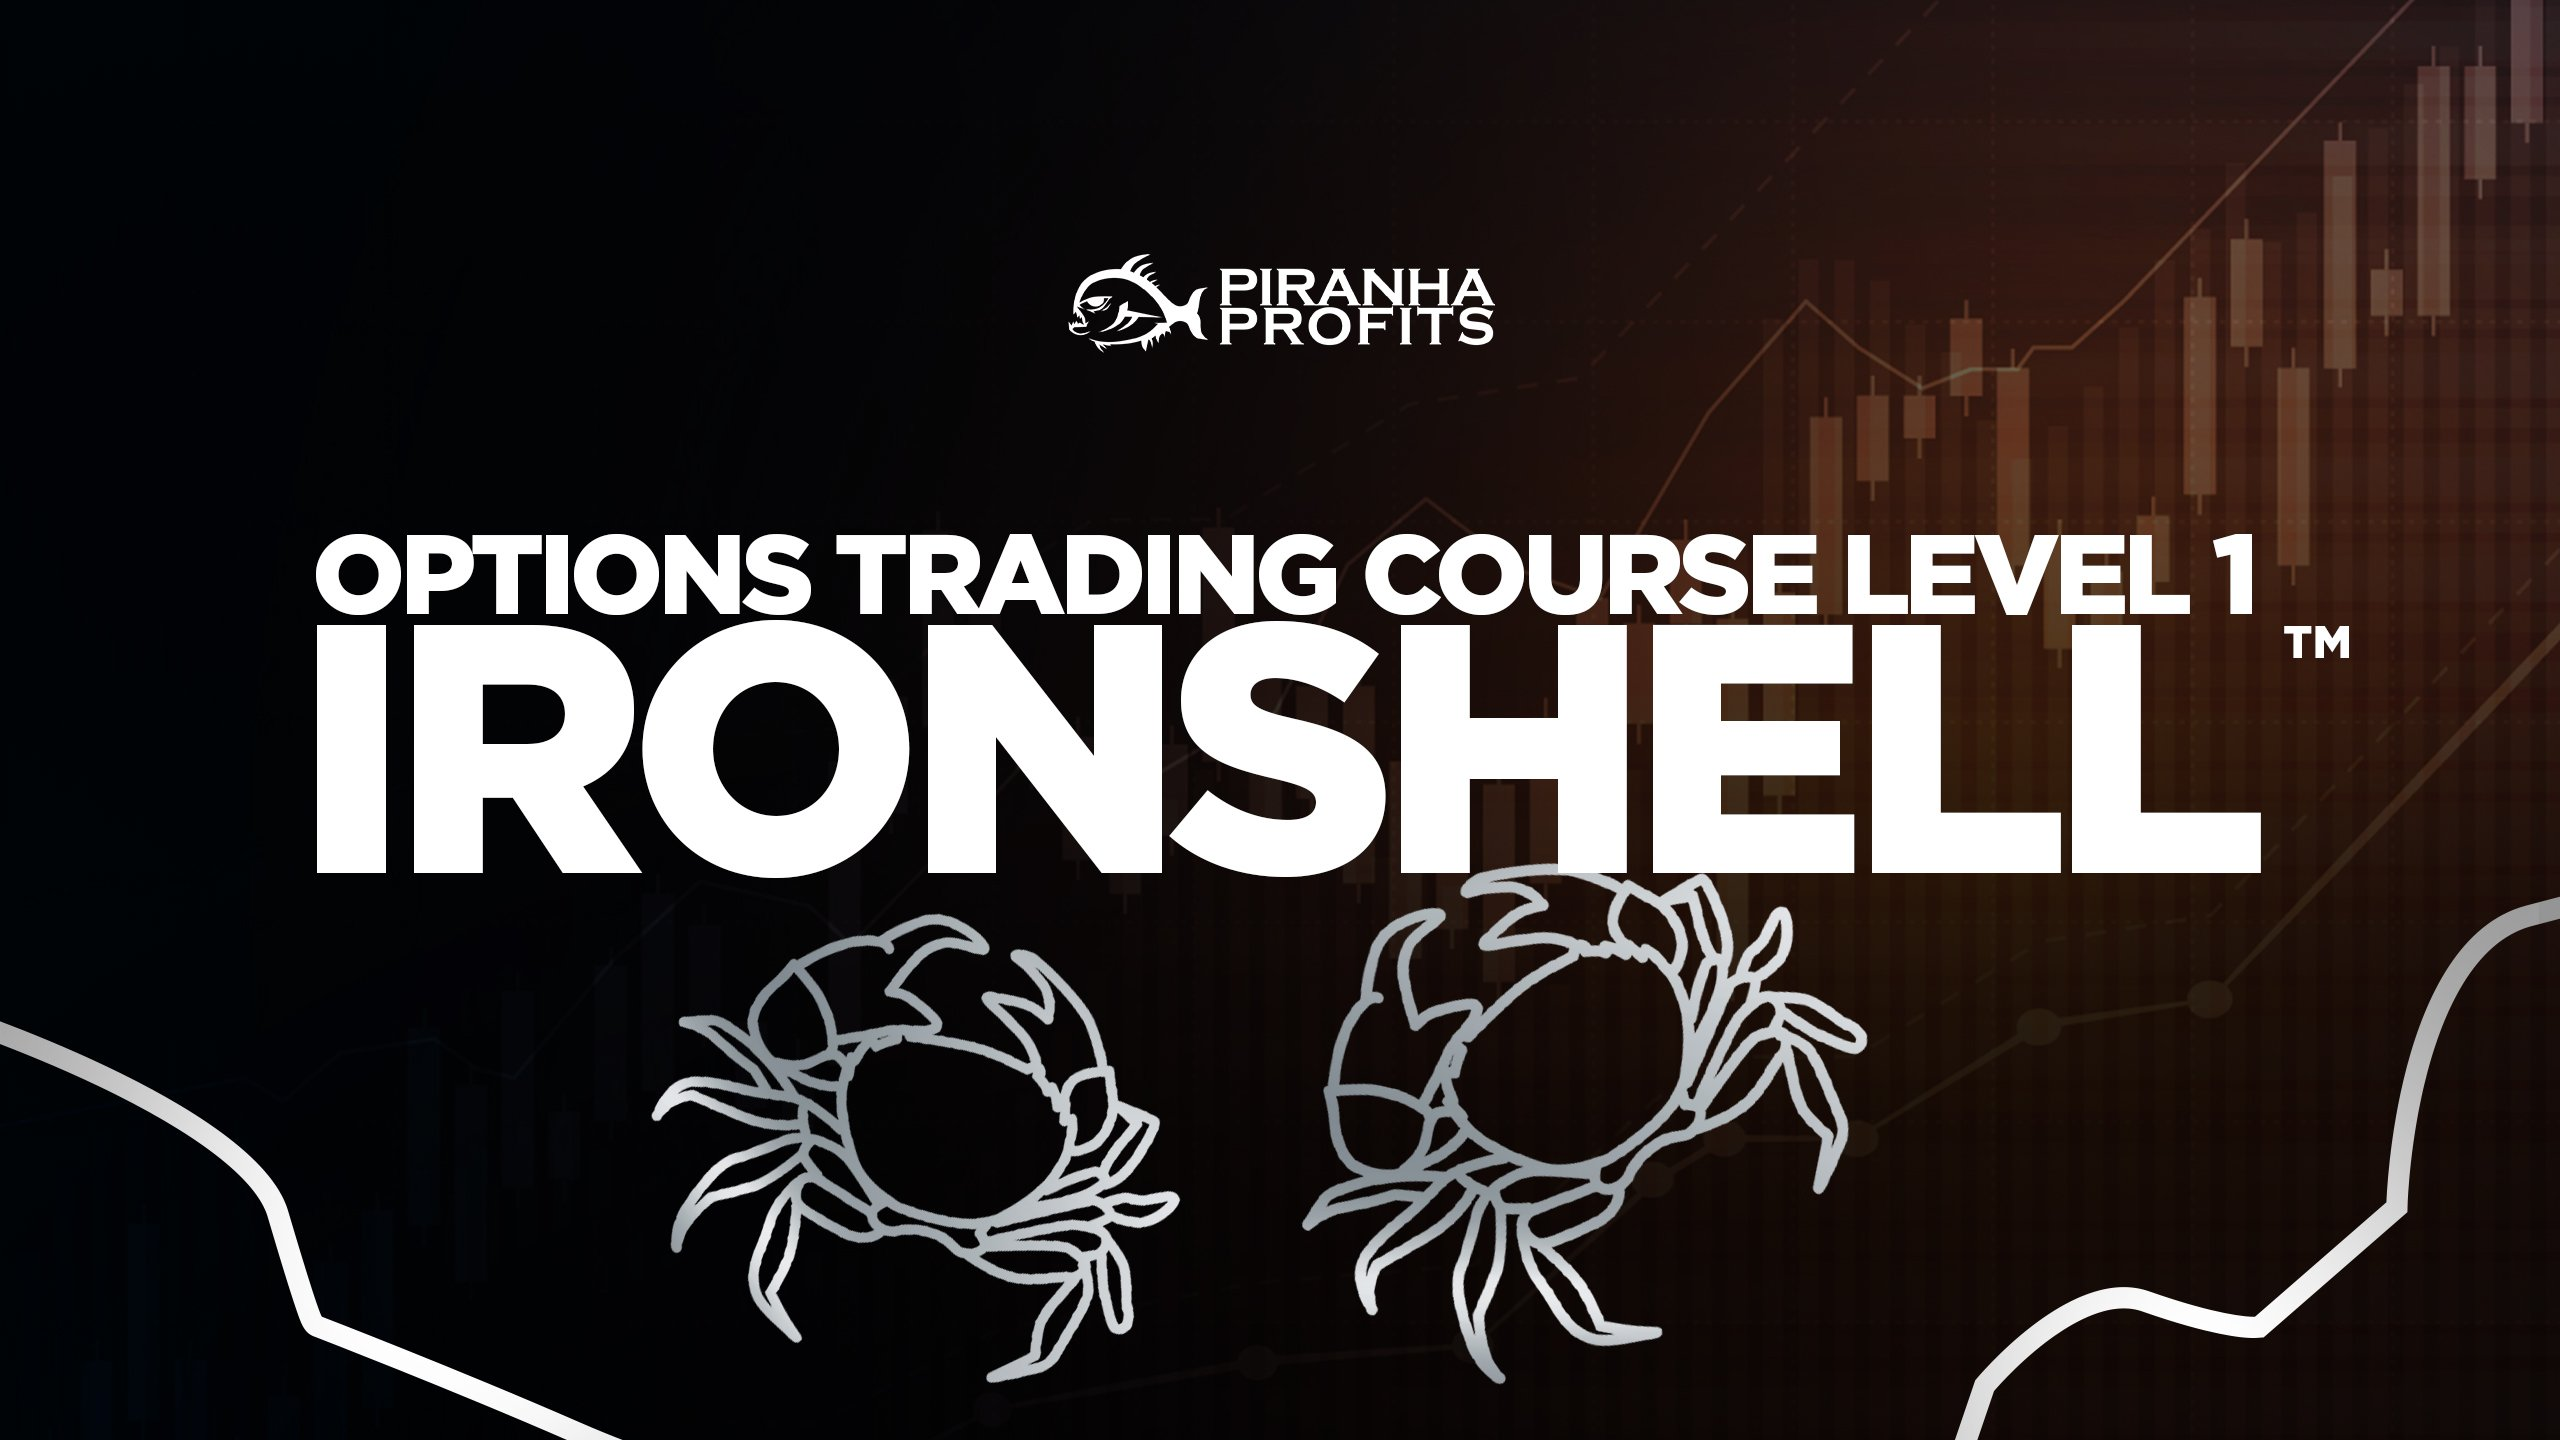 Online options trading course Options Ironshell banner